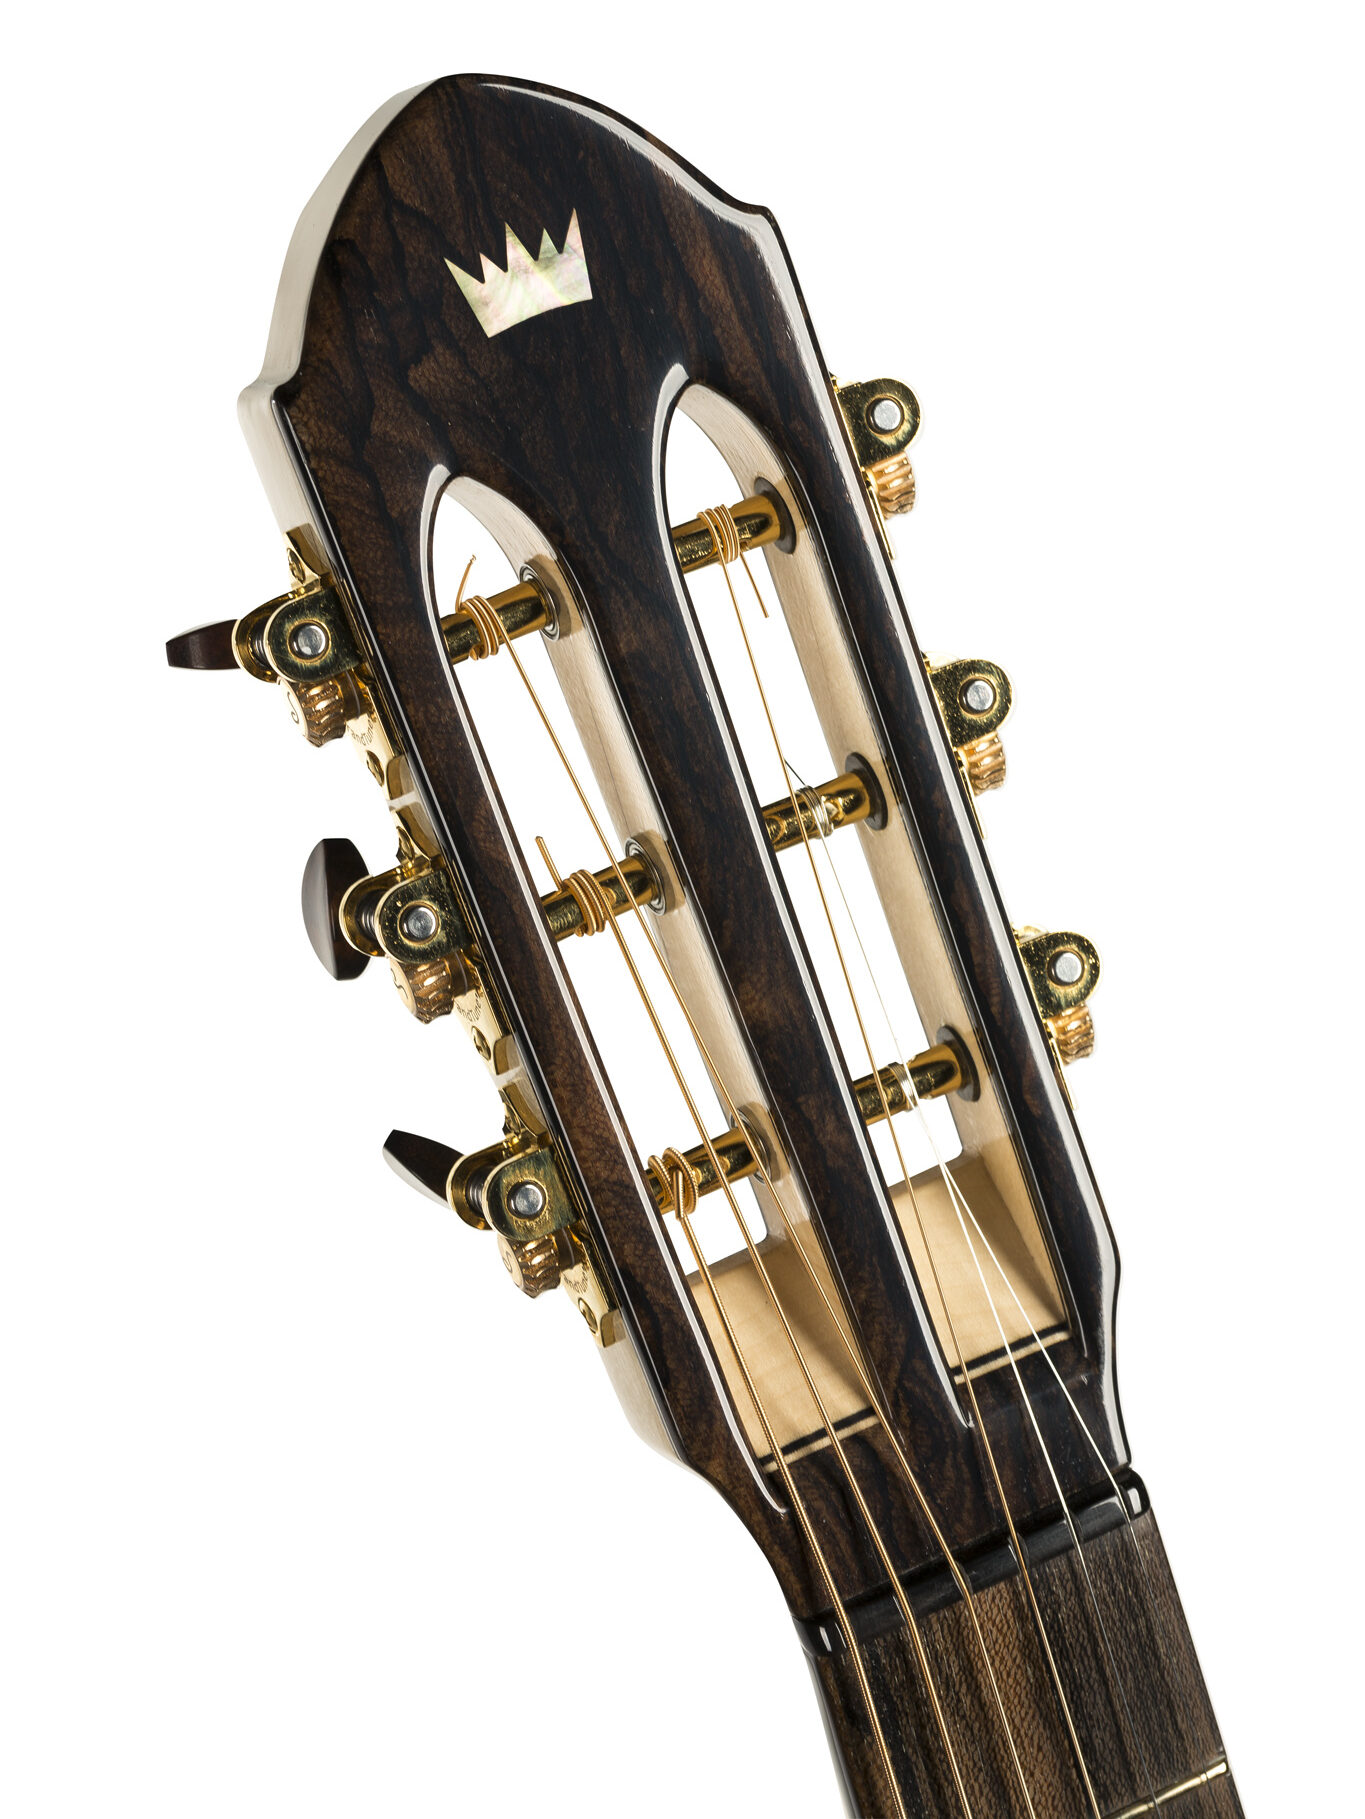 Acoustic Guitar slotted headstock